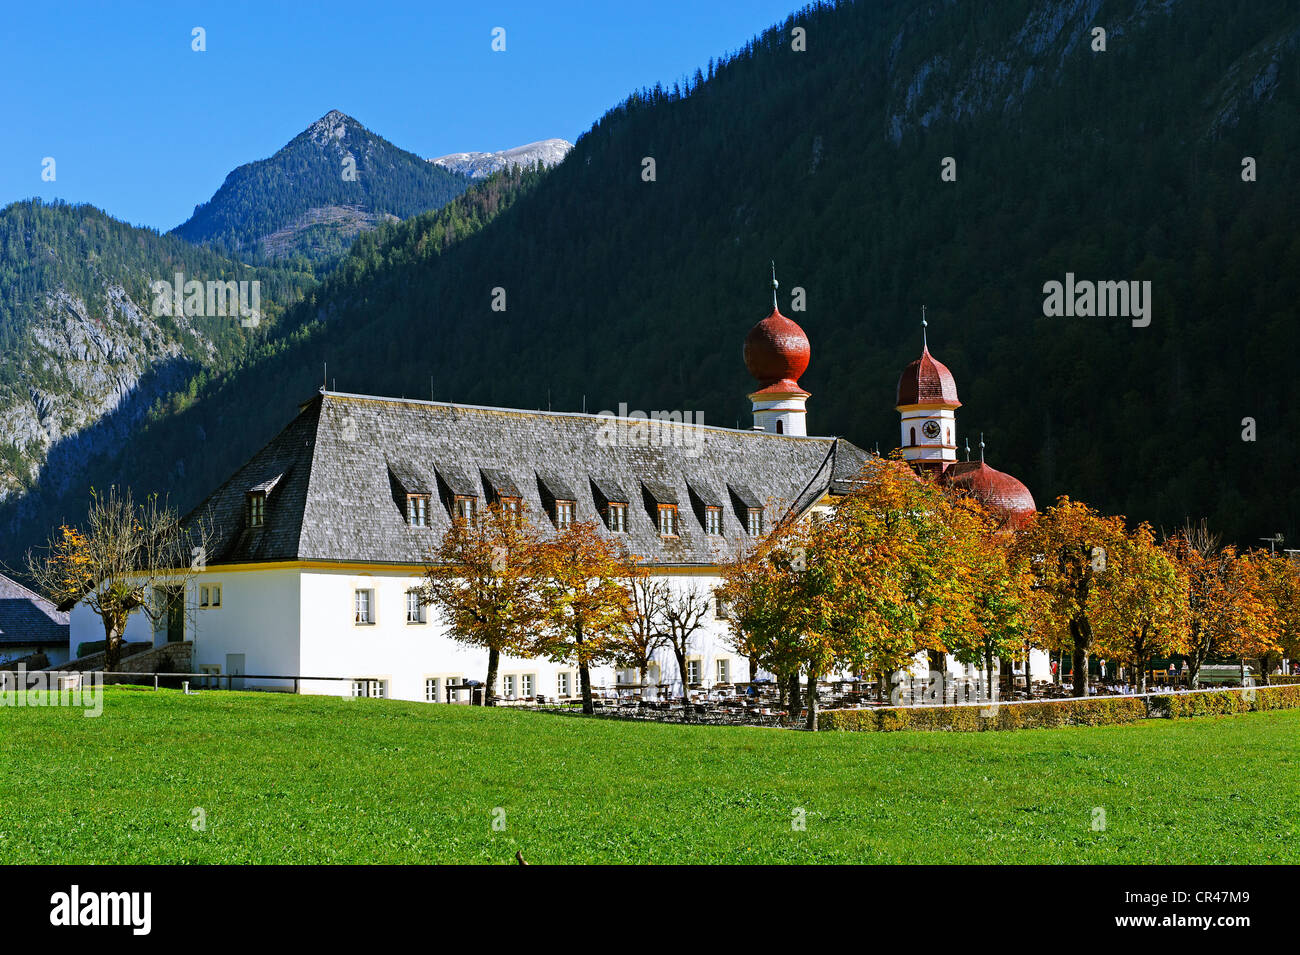 Berchtesgadener Esszimmer Berchtesgaden Deutschland Germany Bavaria Berchtesgadener Land View Stockfotos Germany